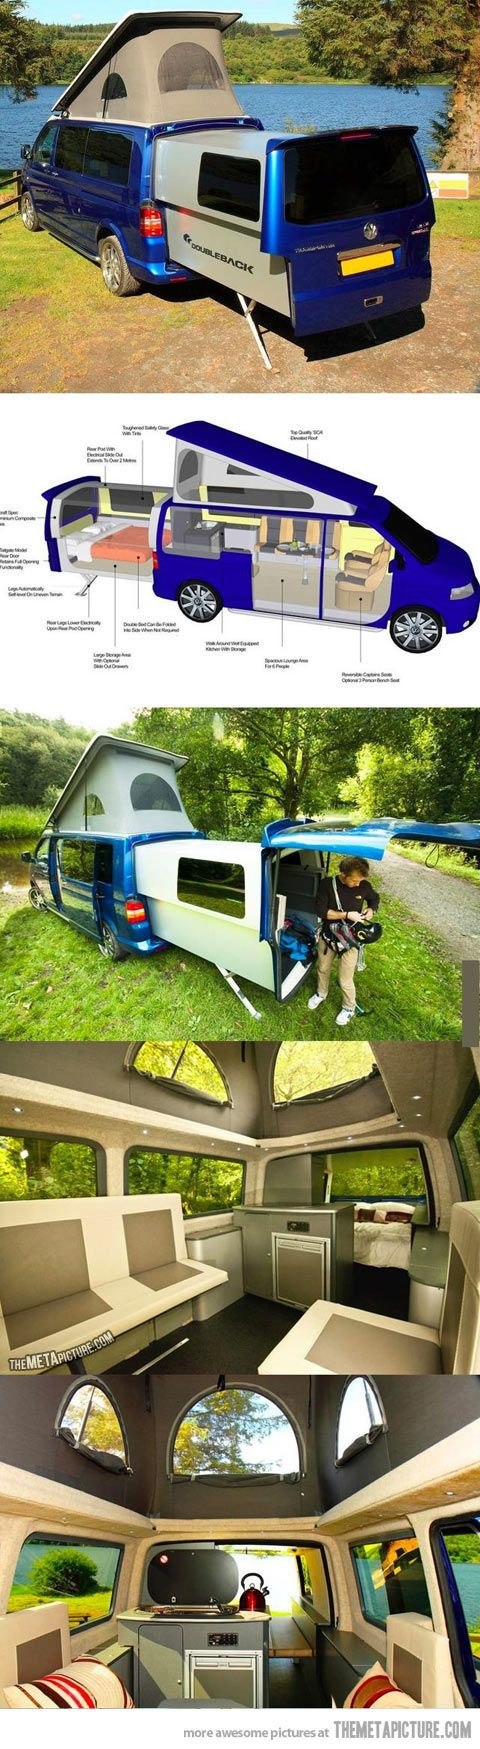 This is an awesome camper van!!!